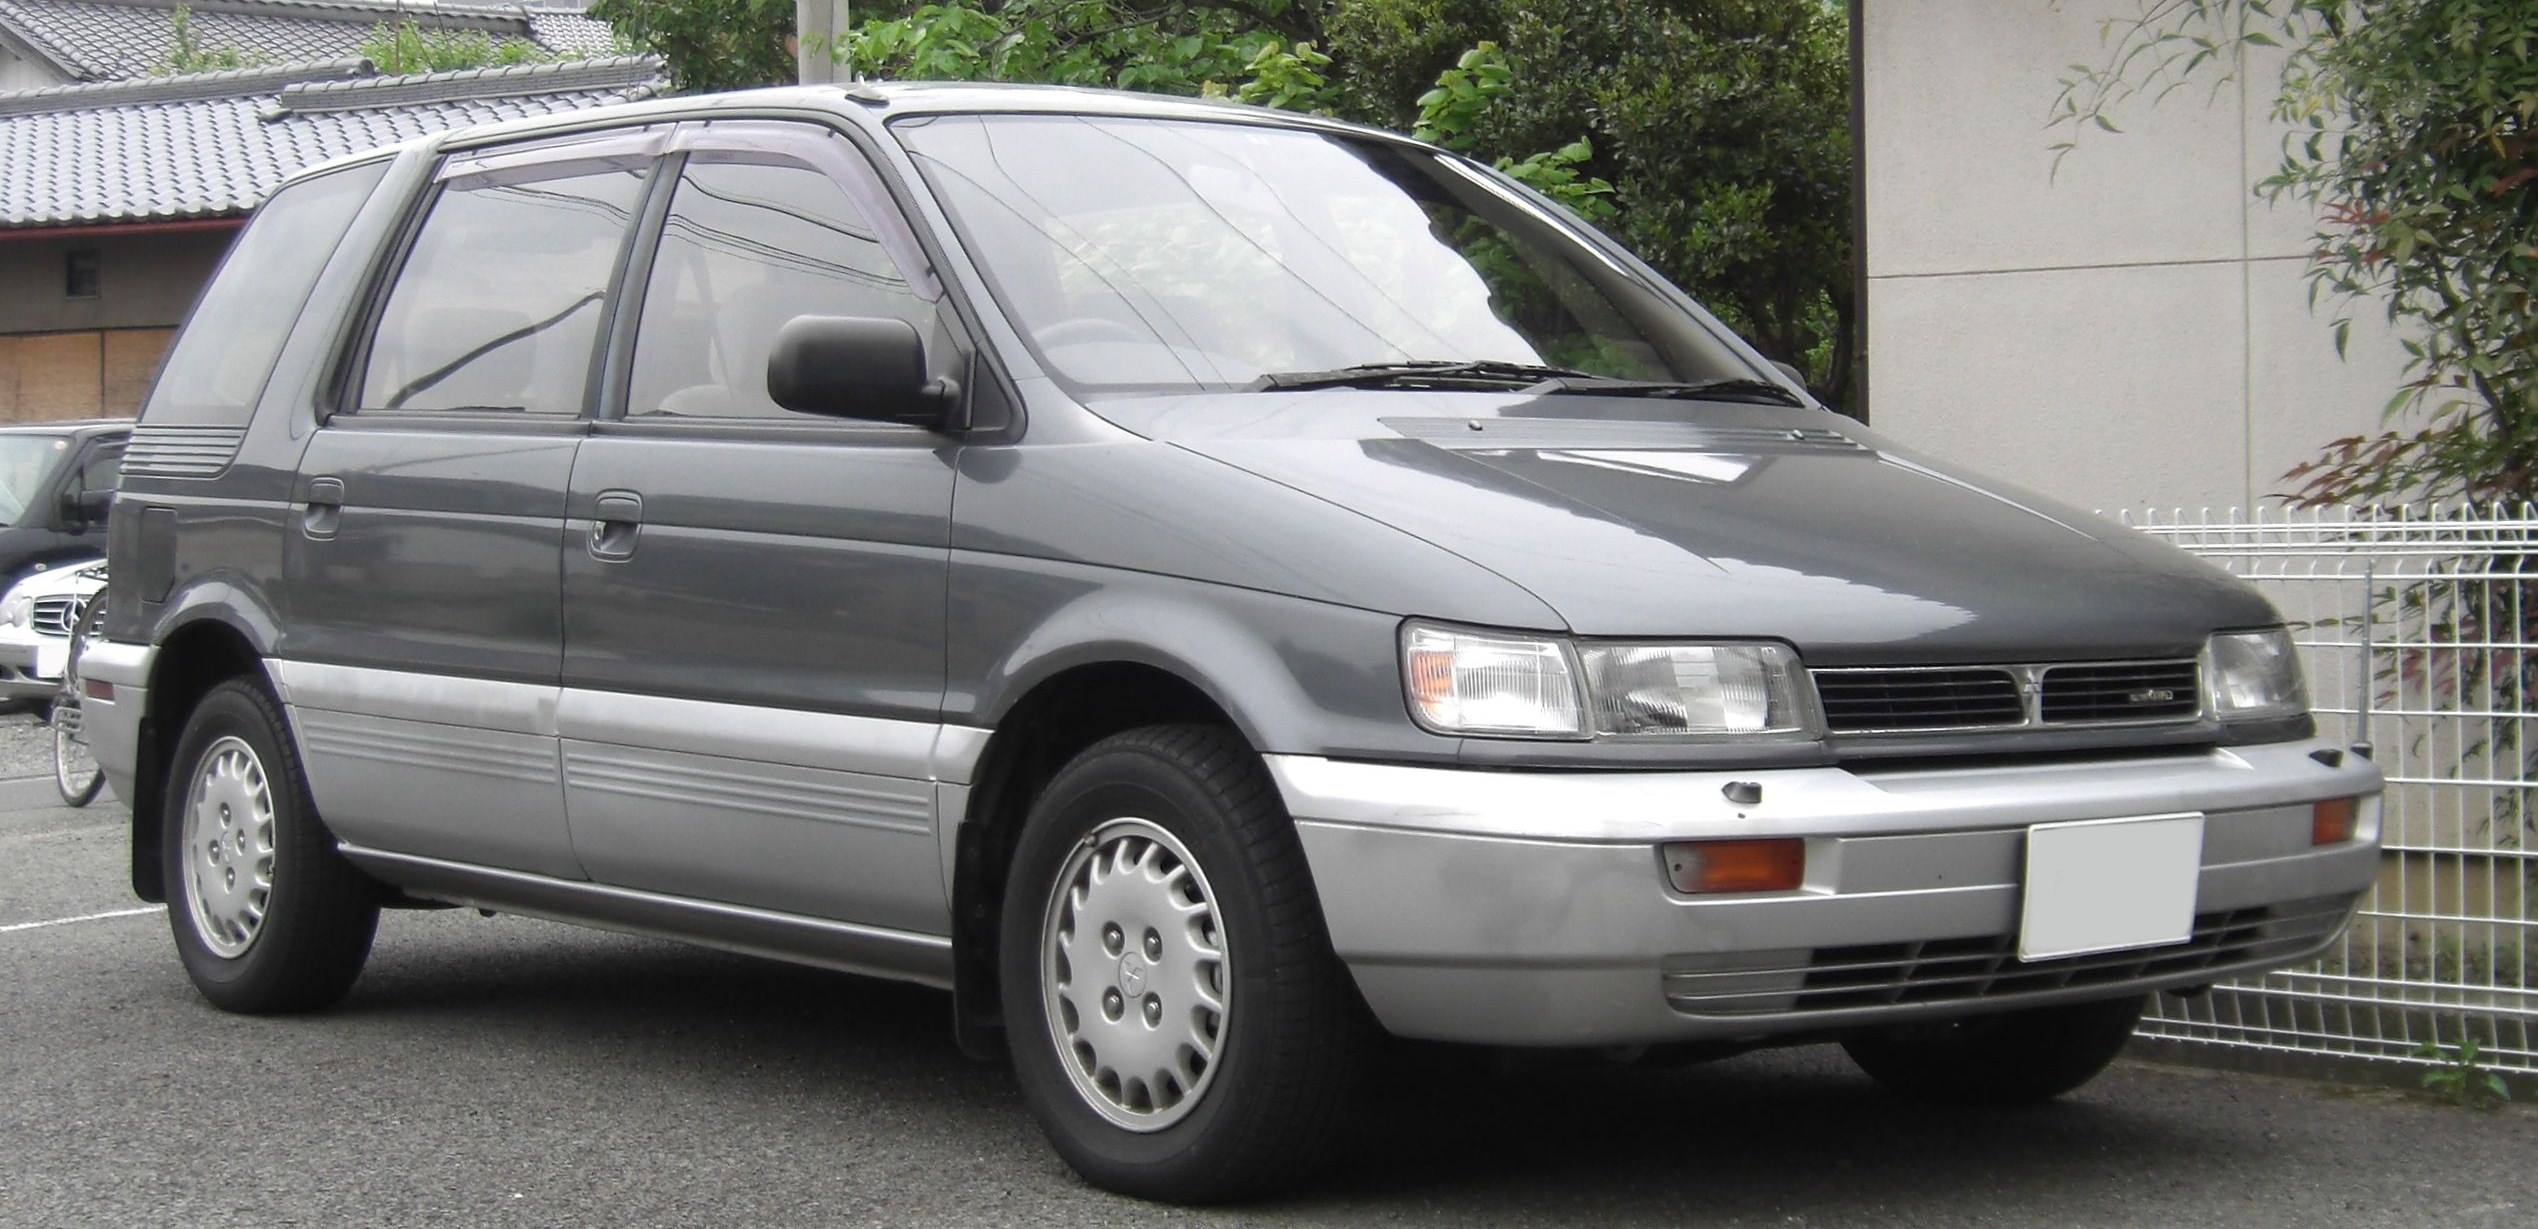 1991 Mitsubishi Space Wagon #3